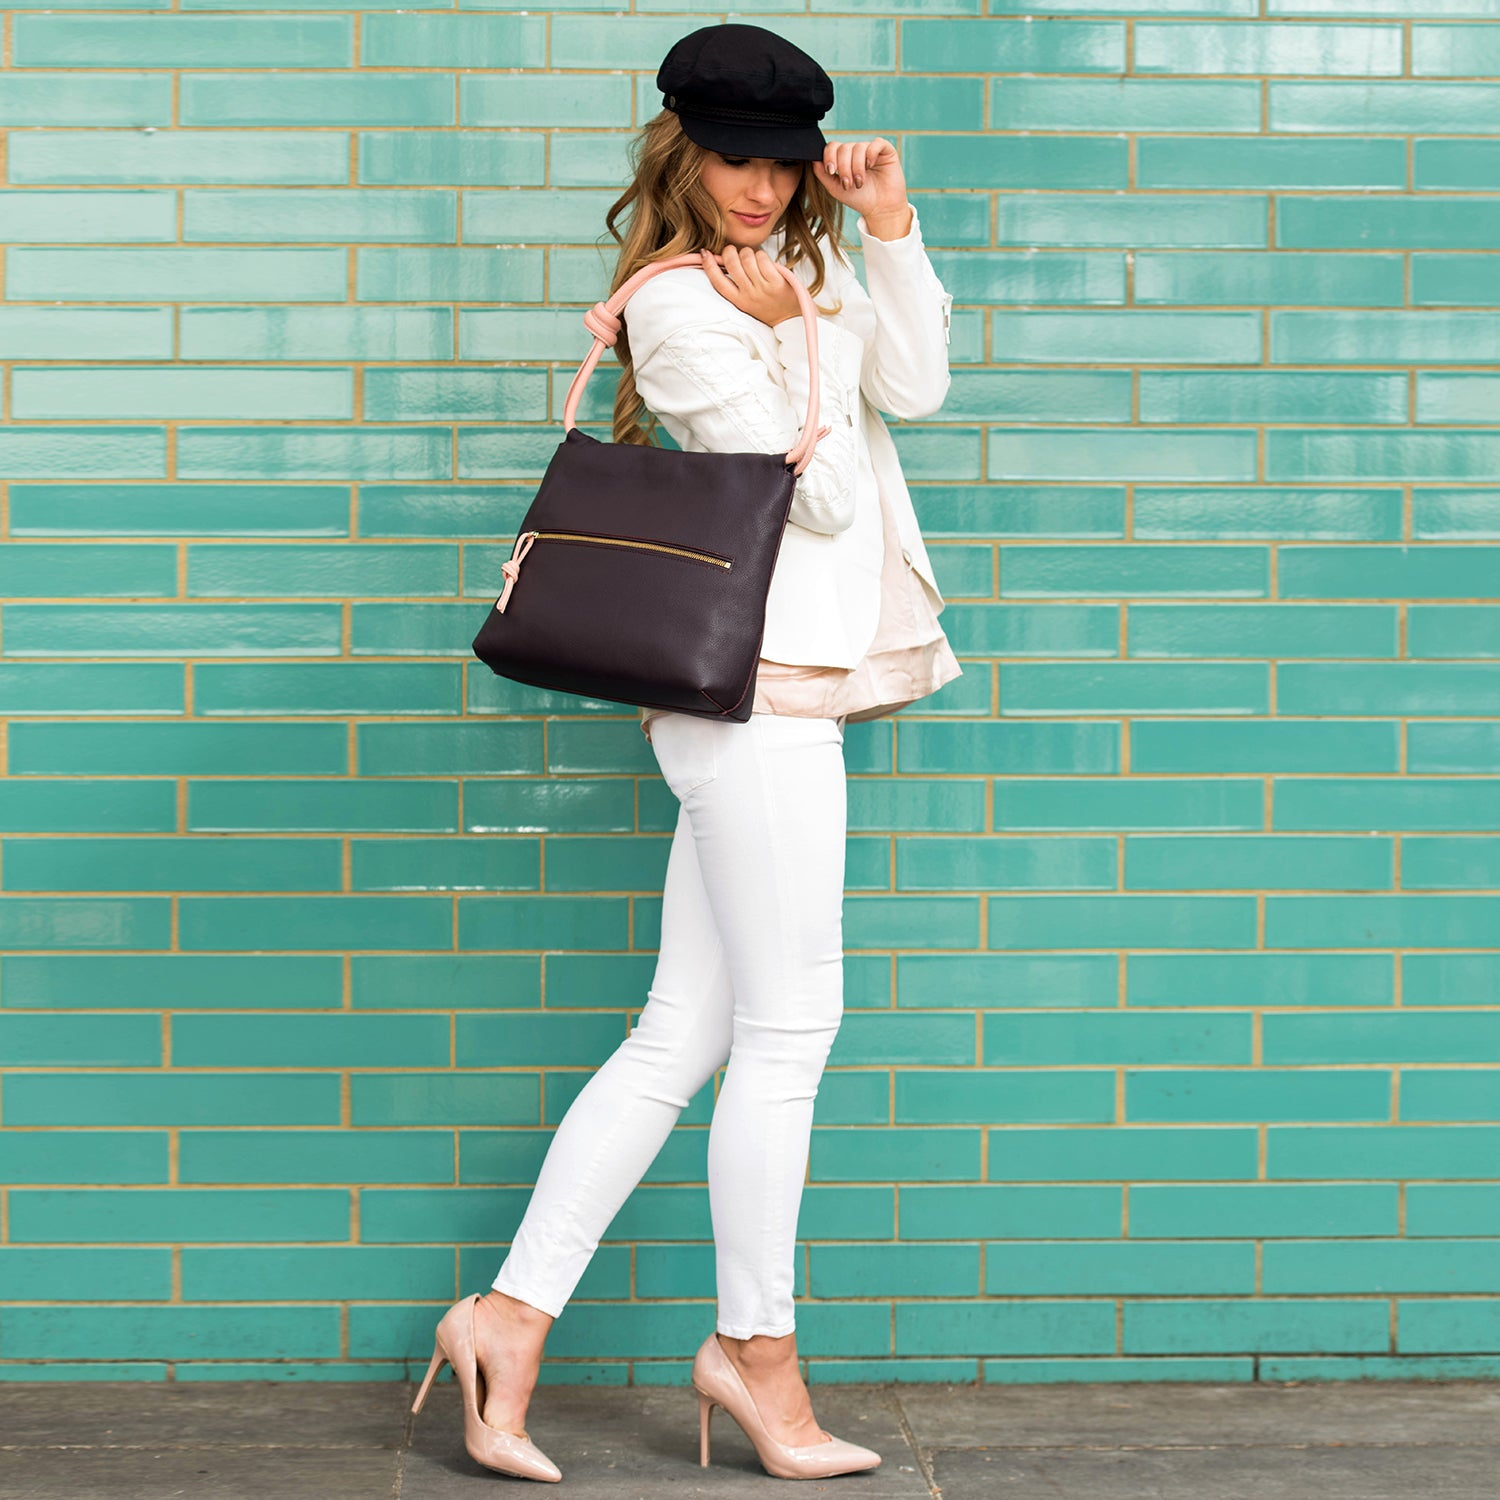 A model wearing convertible leather blue and grey shoulder bag for women.